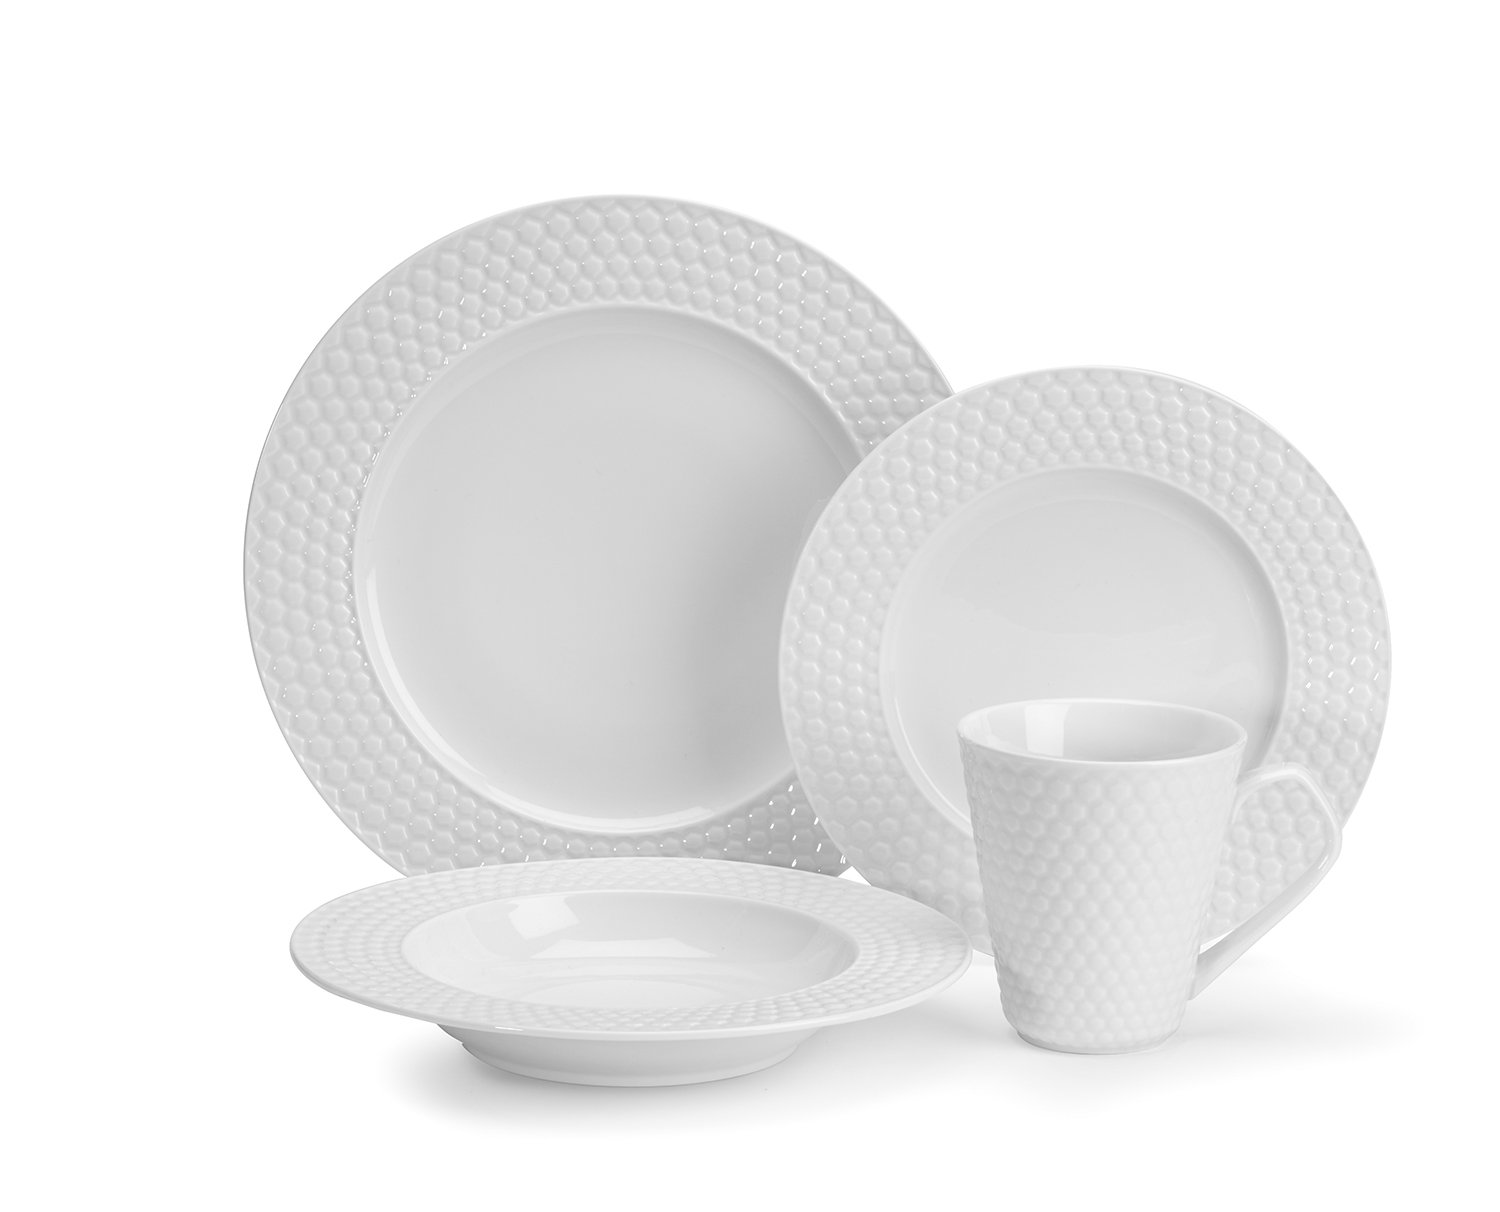 Cuisinart CDP01-S4WC Chailles Collection 16-Piece Porcelain Dinnerware Set by Cuisinart